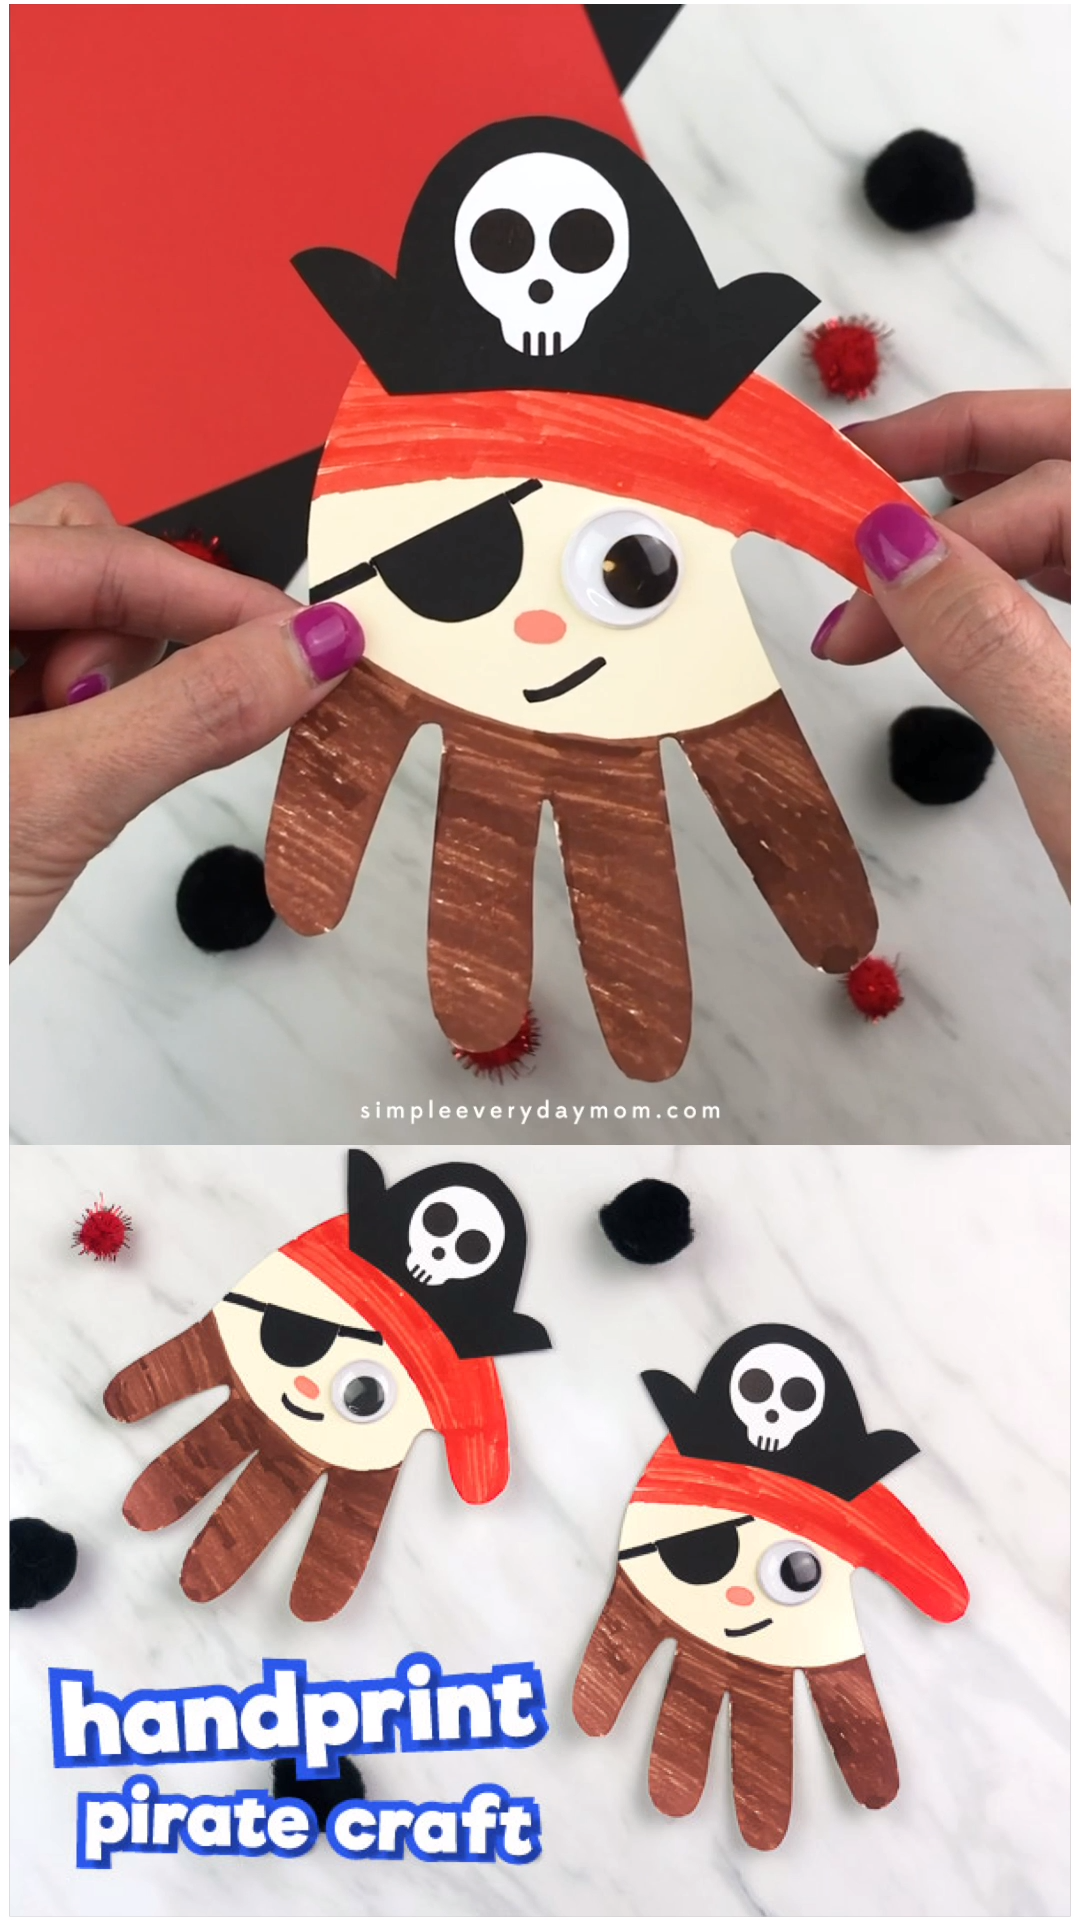 Handprint Pirate Craft For Kids #craftsforkids